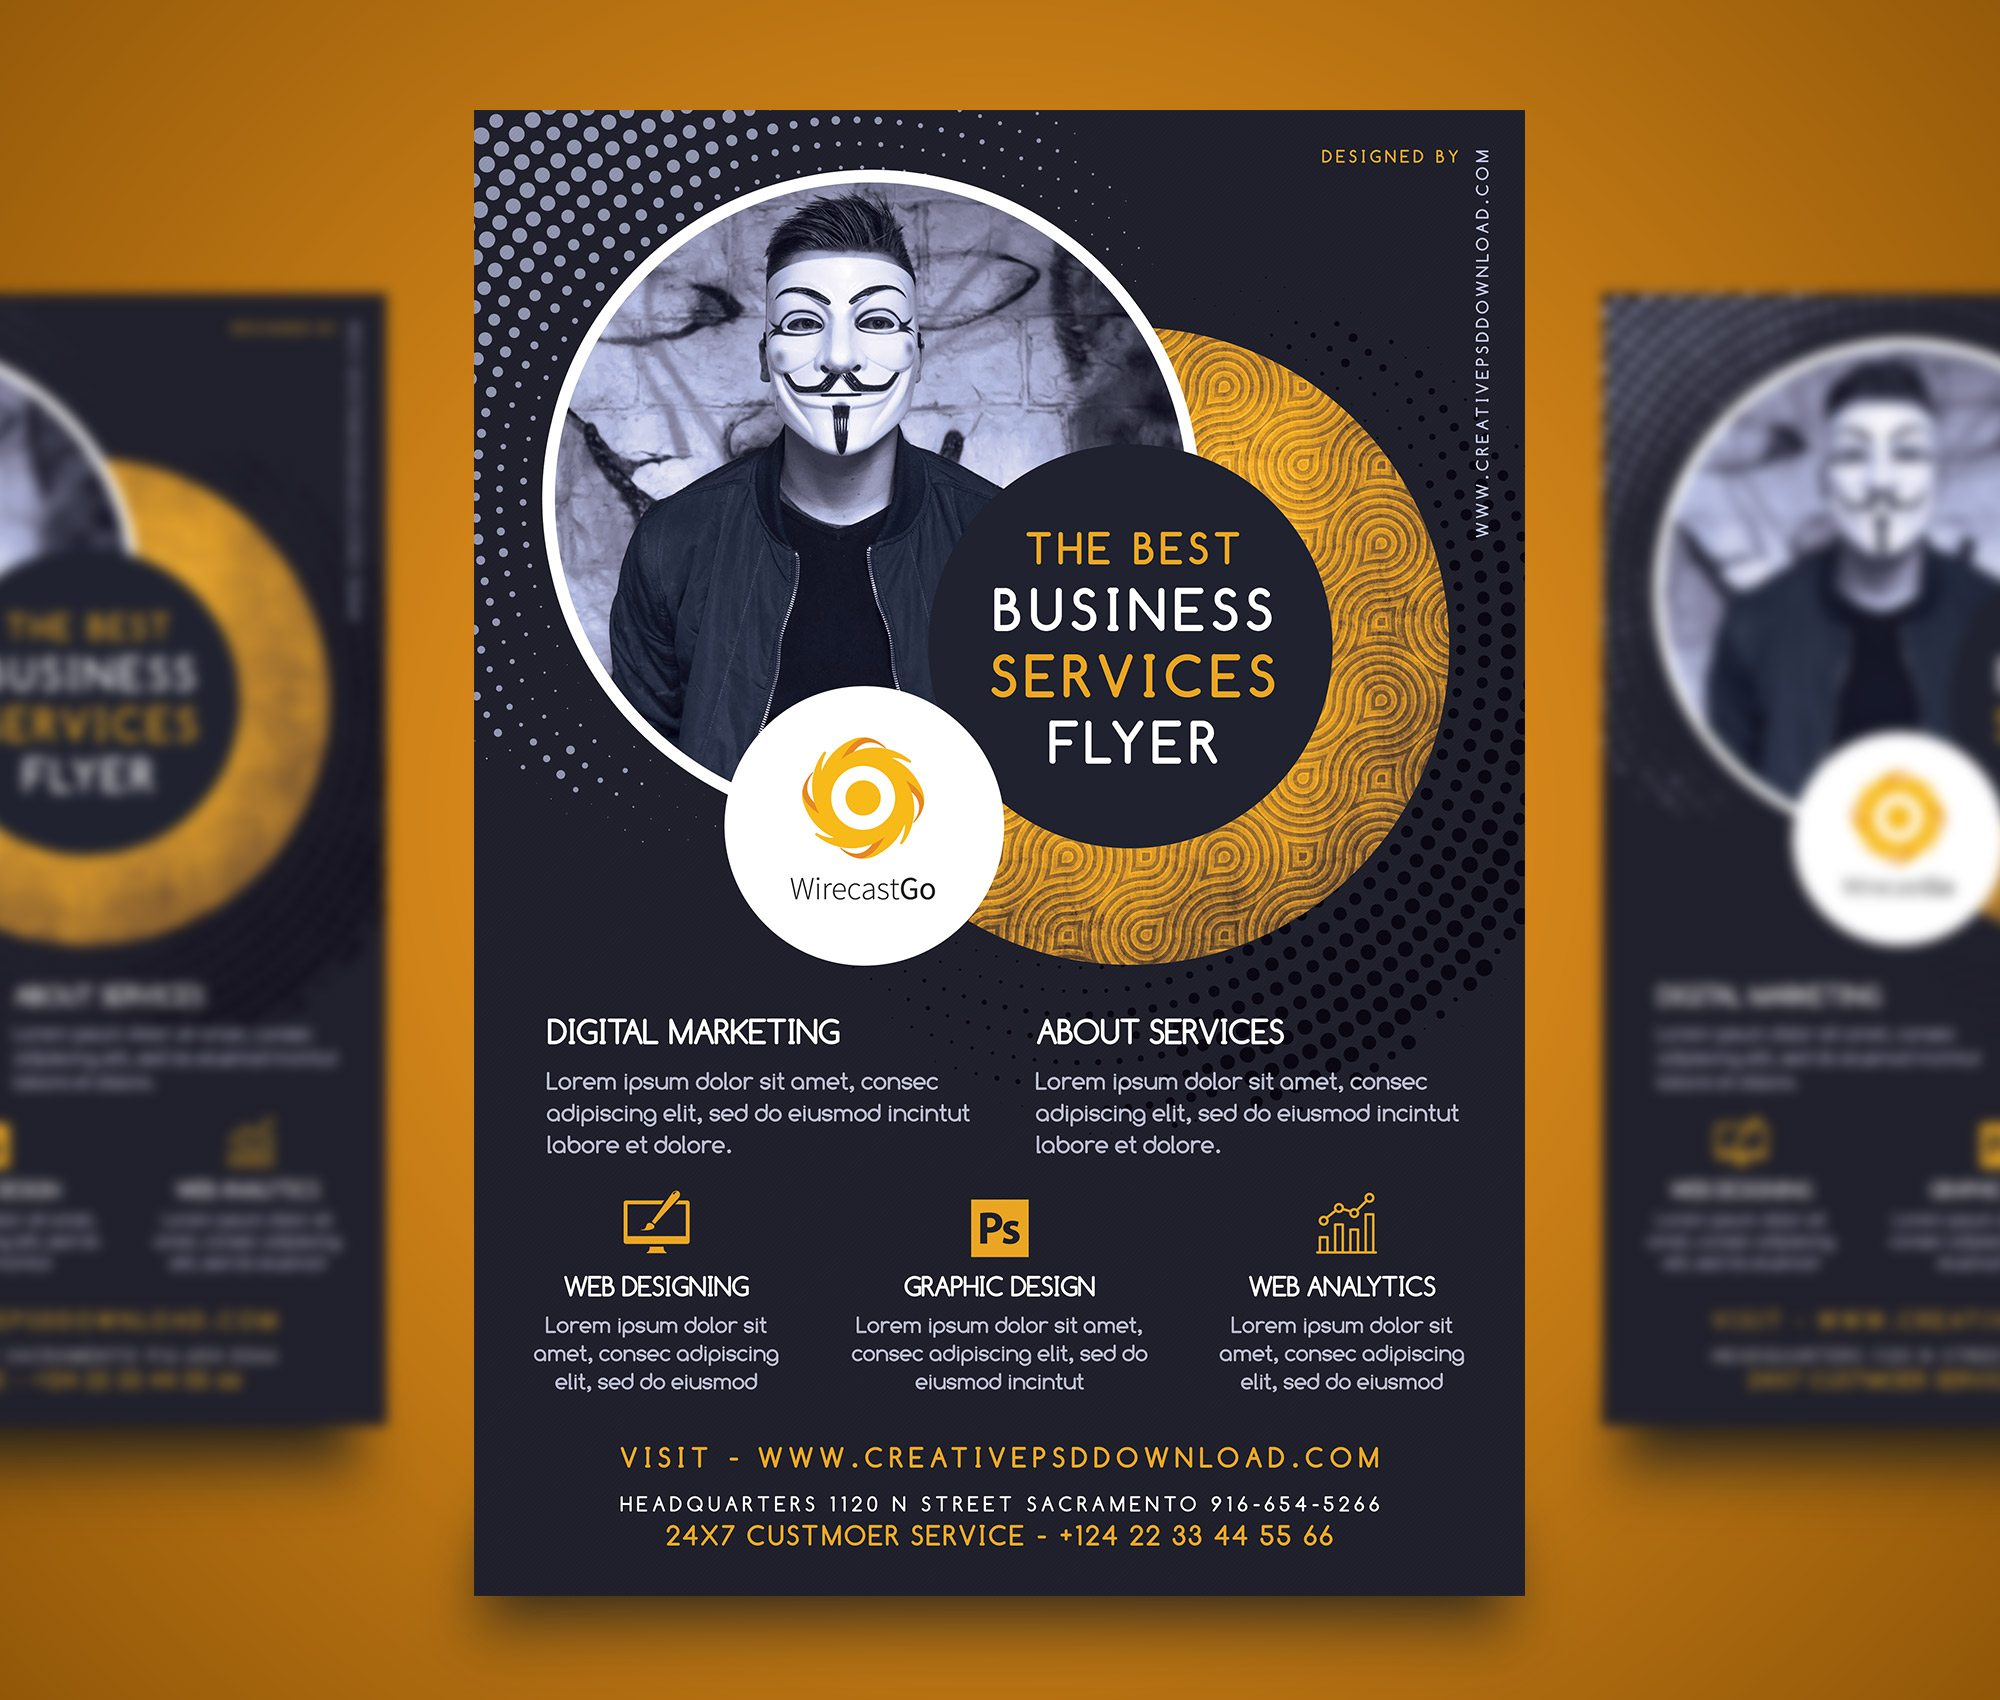 flyer design psd free download,corporate flyer design free download,corporate business flyer,corporate flyer template,free psd business flyer templates free download,corporate poster template,corporate flyer vector,product promotion flyer template free,free corporate flyer templates,corporate flyer design free download,flyer design psd free download,corporate business flyer,free psd business flyer templates free download,corporate flyer vector,product promotion flyer template free,corporate poster template,